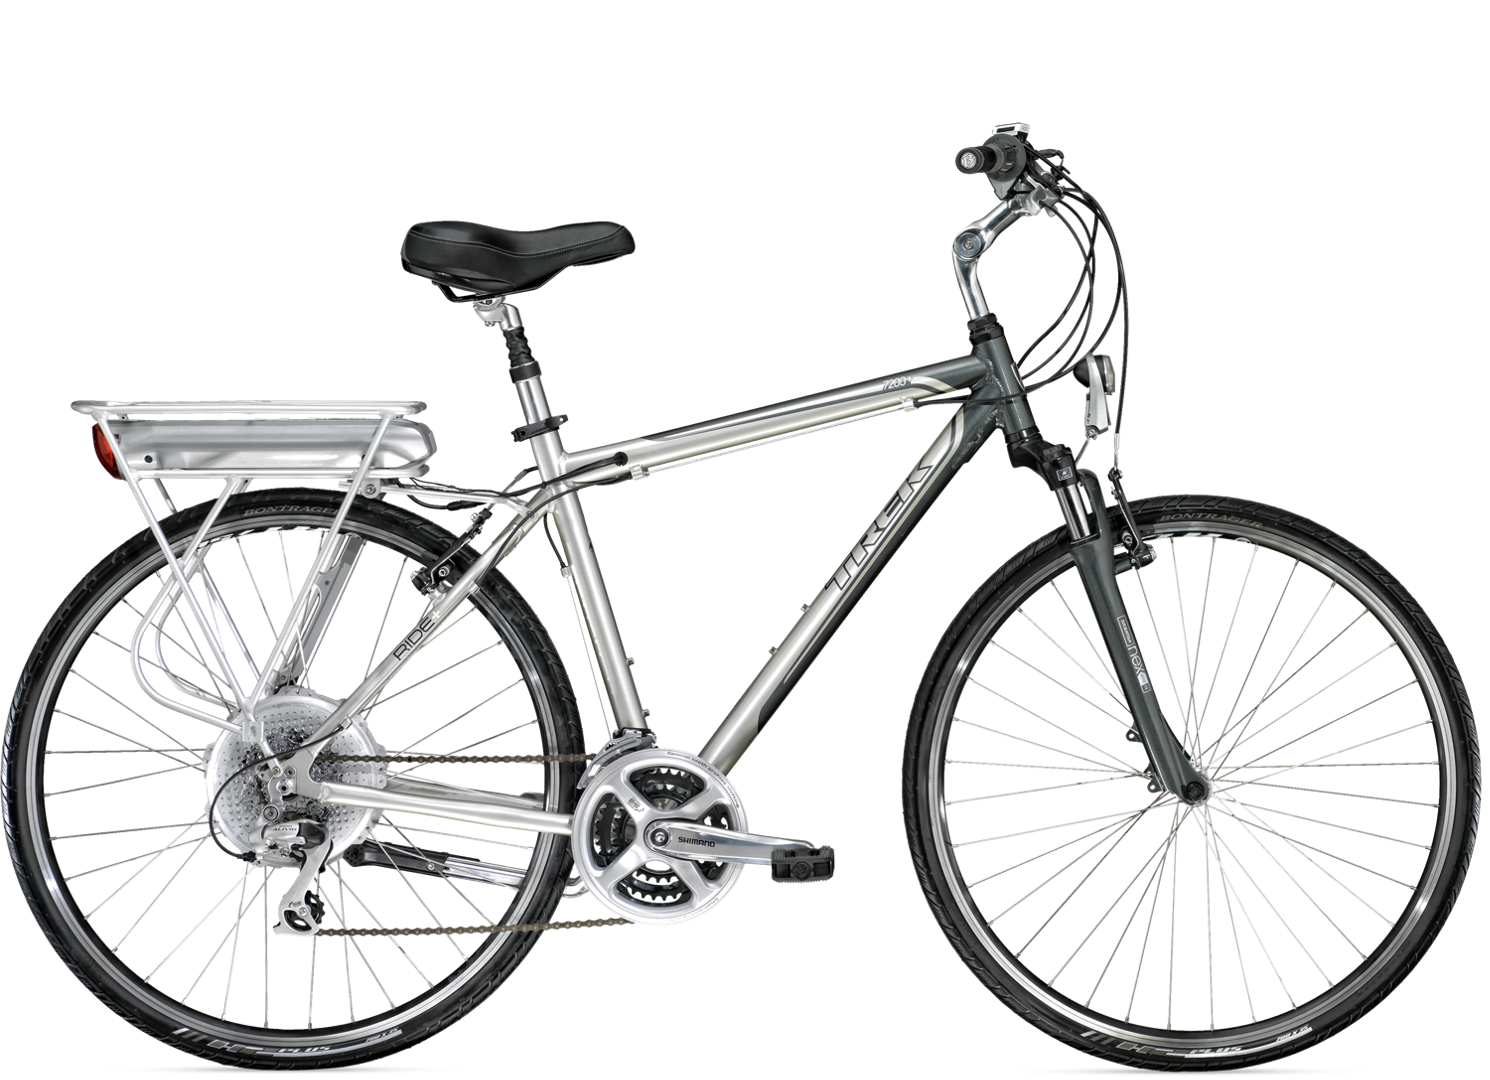 2012 7200 Trek Bicycle Of Course I Love It Bike Electric